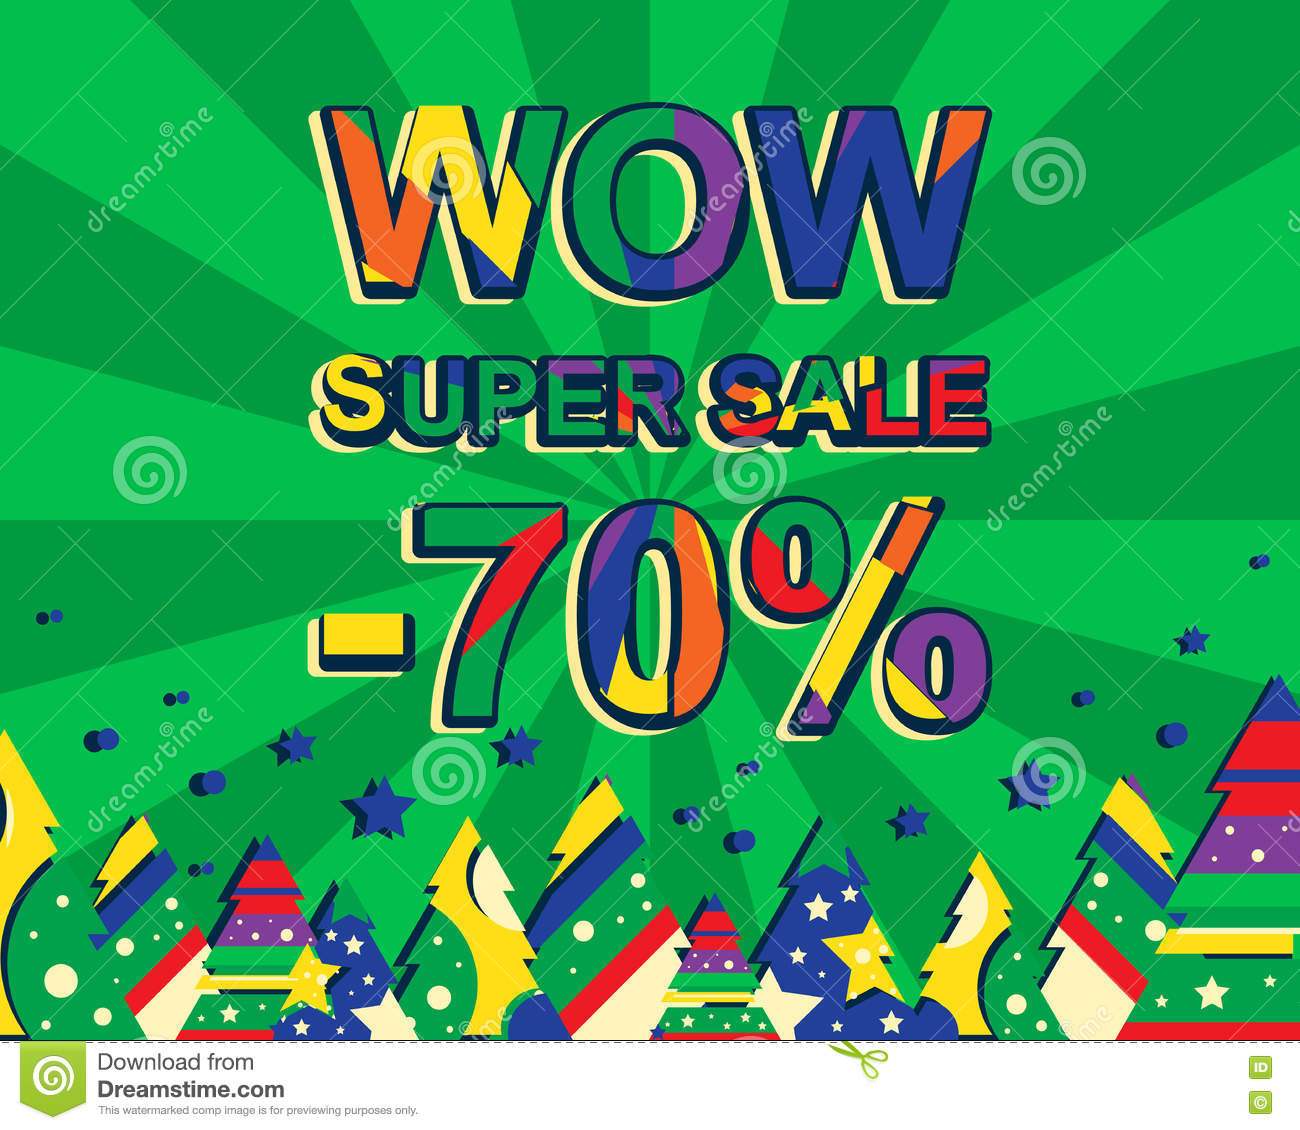 Big winter sale poster with wow super sale minus 70 percent text.